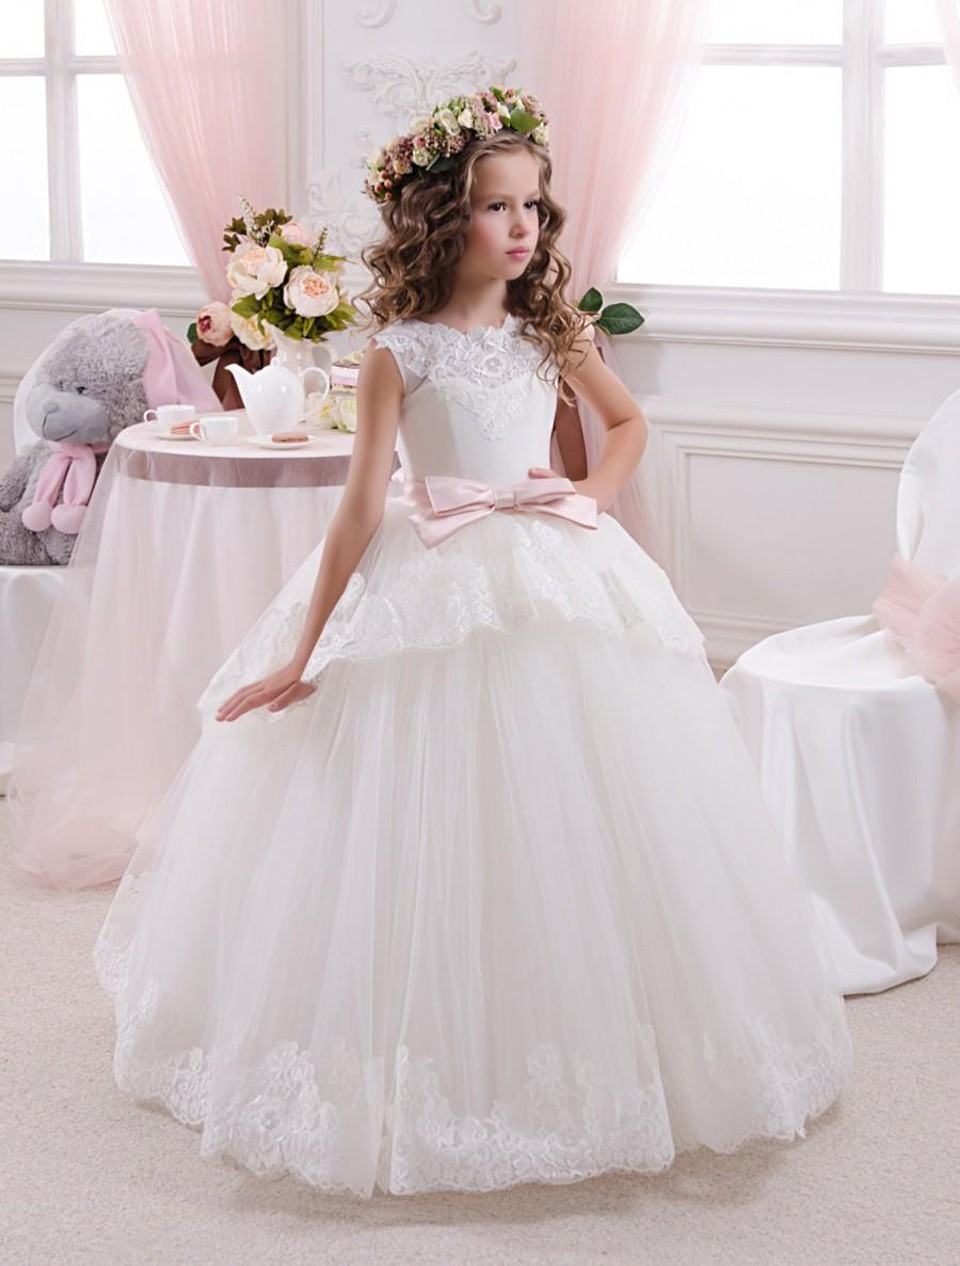 White 2019   Flower     Girl     Dresses   For Weddings Ball Gown Tulle Appliques Lace Bow Long First Communion   Dresses   Little   Girl